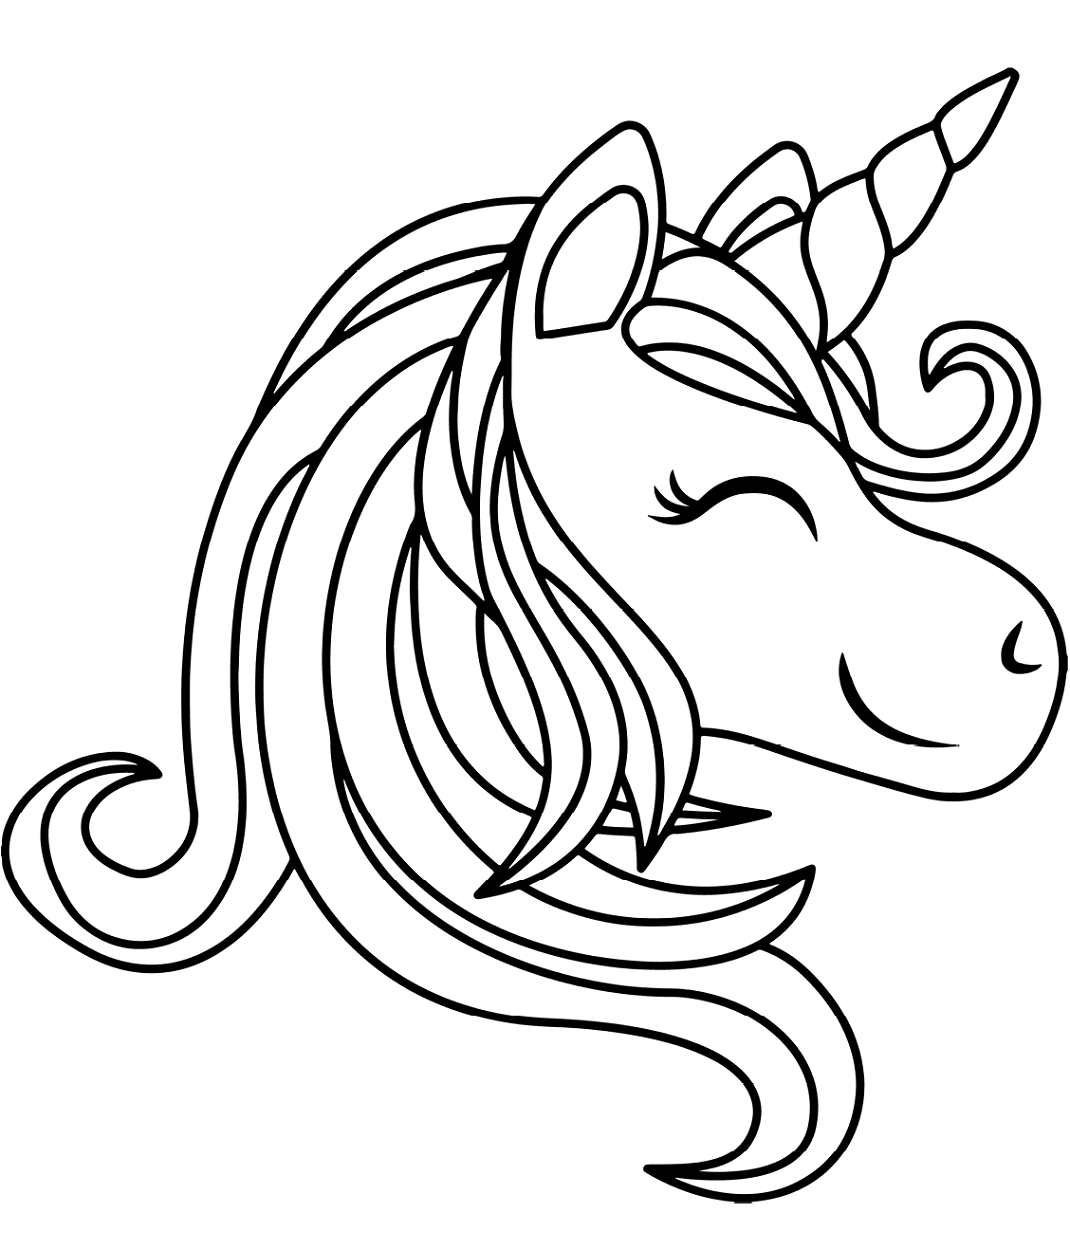 printable unicorn head coloring pages cute unicorn head pages printable coloring pages printable head unicorn coloring pages